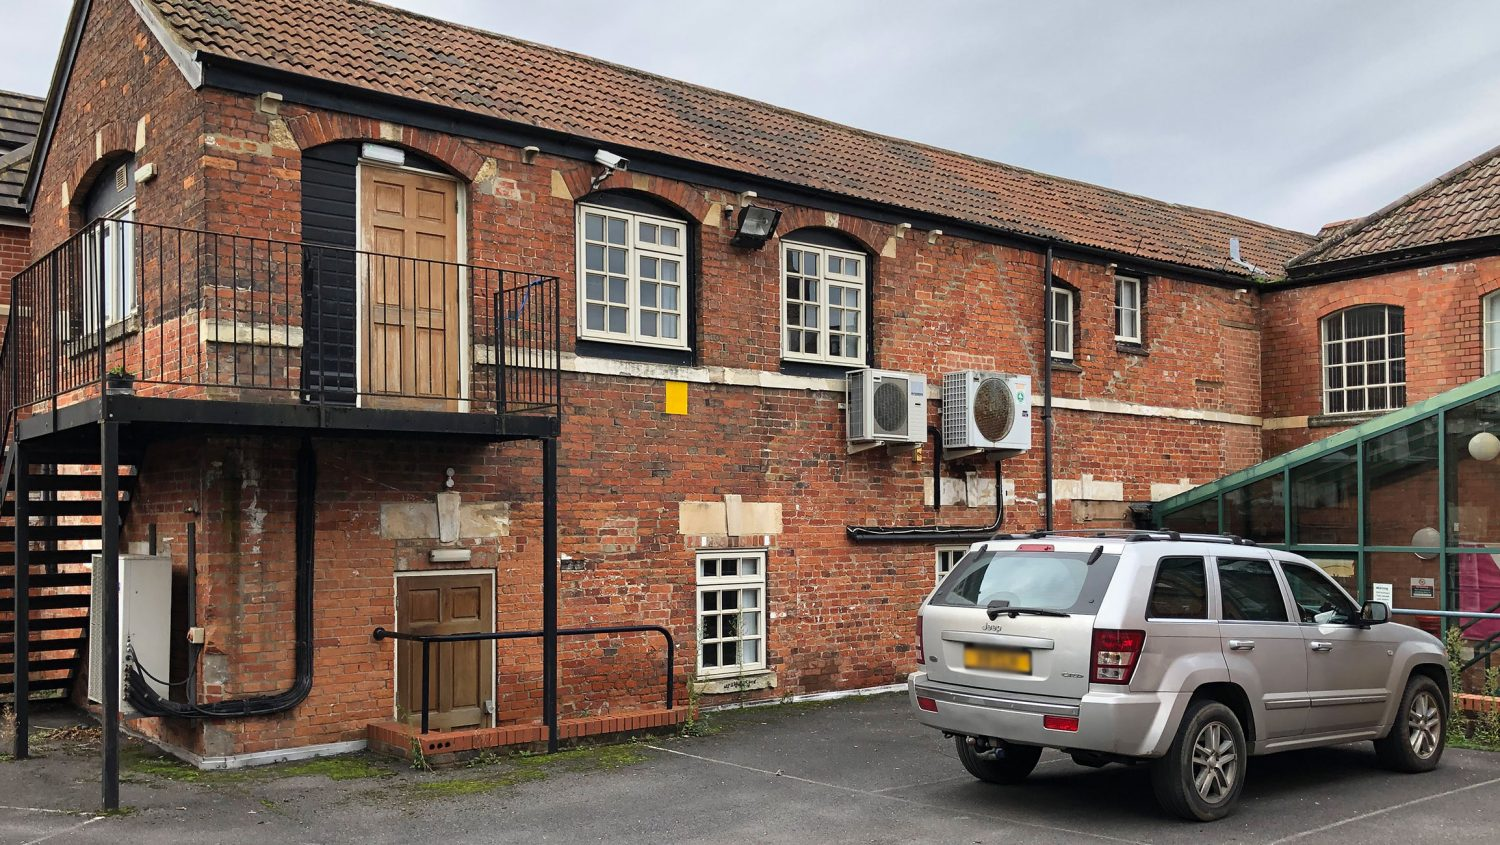 Former Wiltshire Times office and printing works